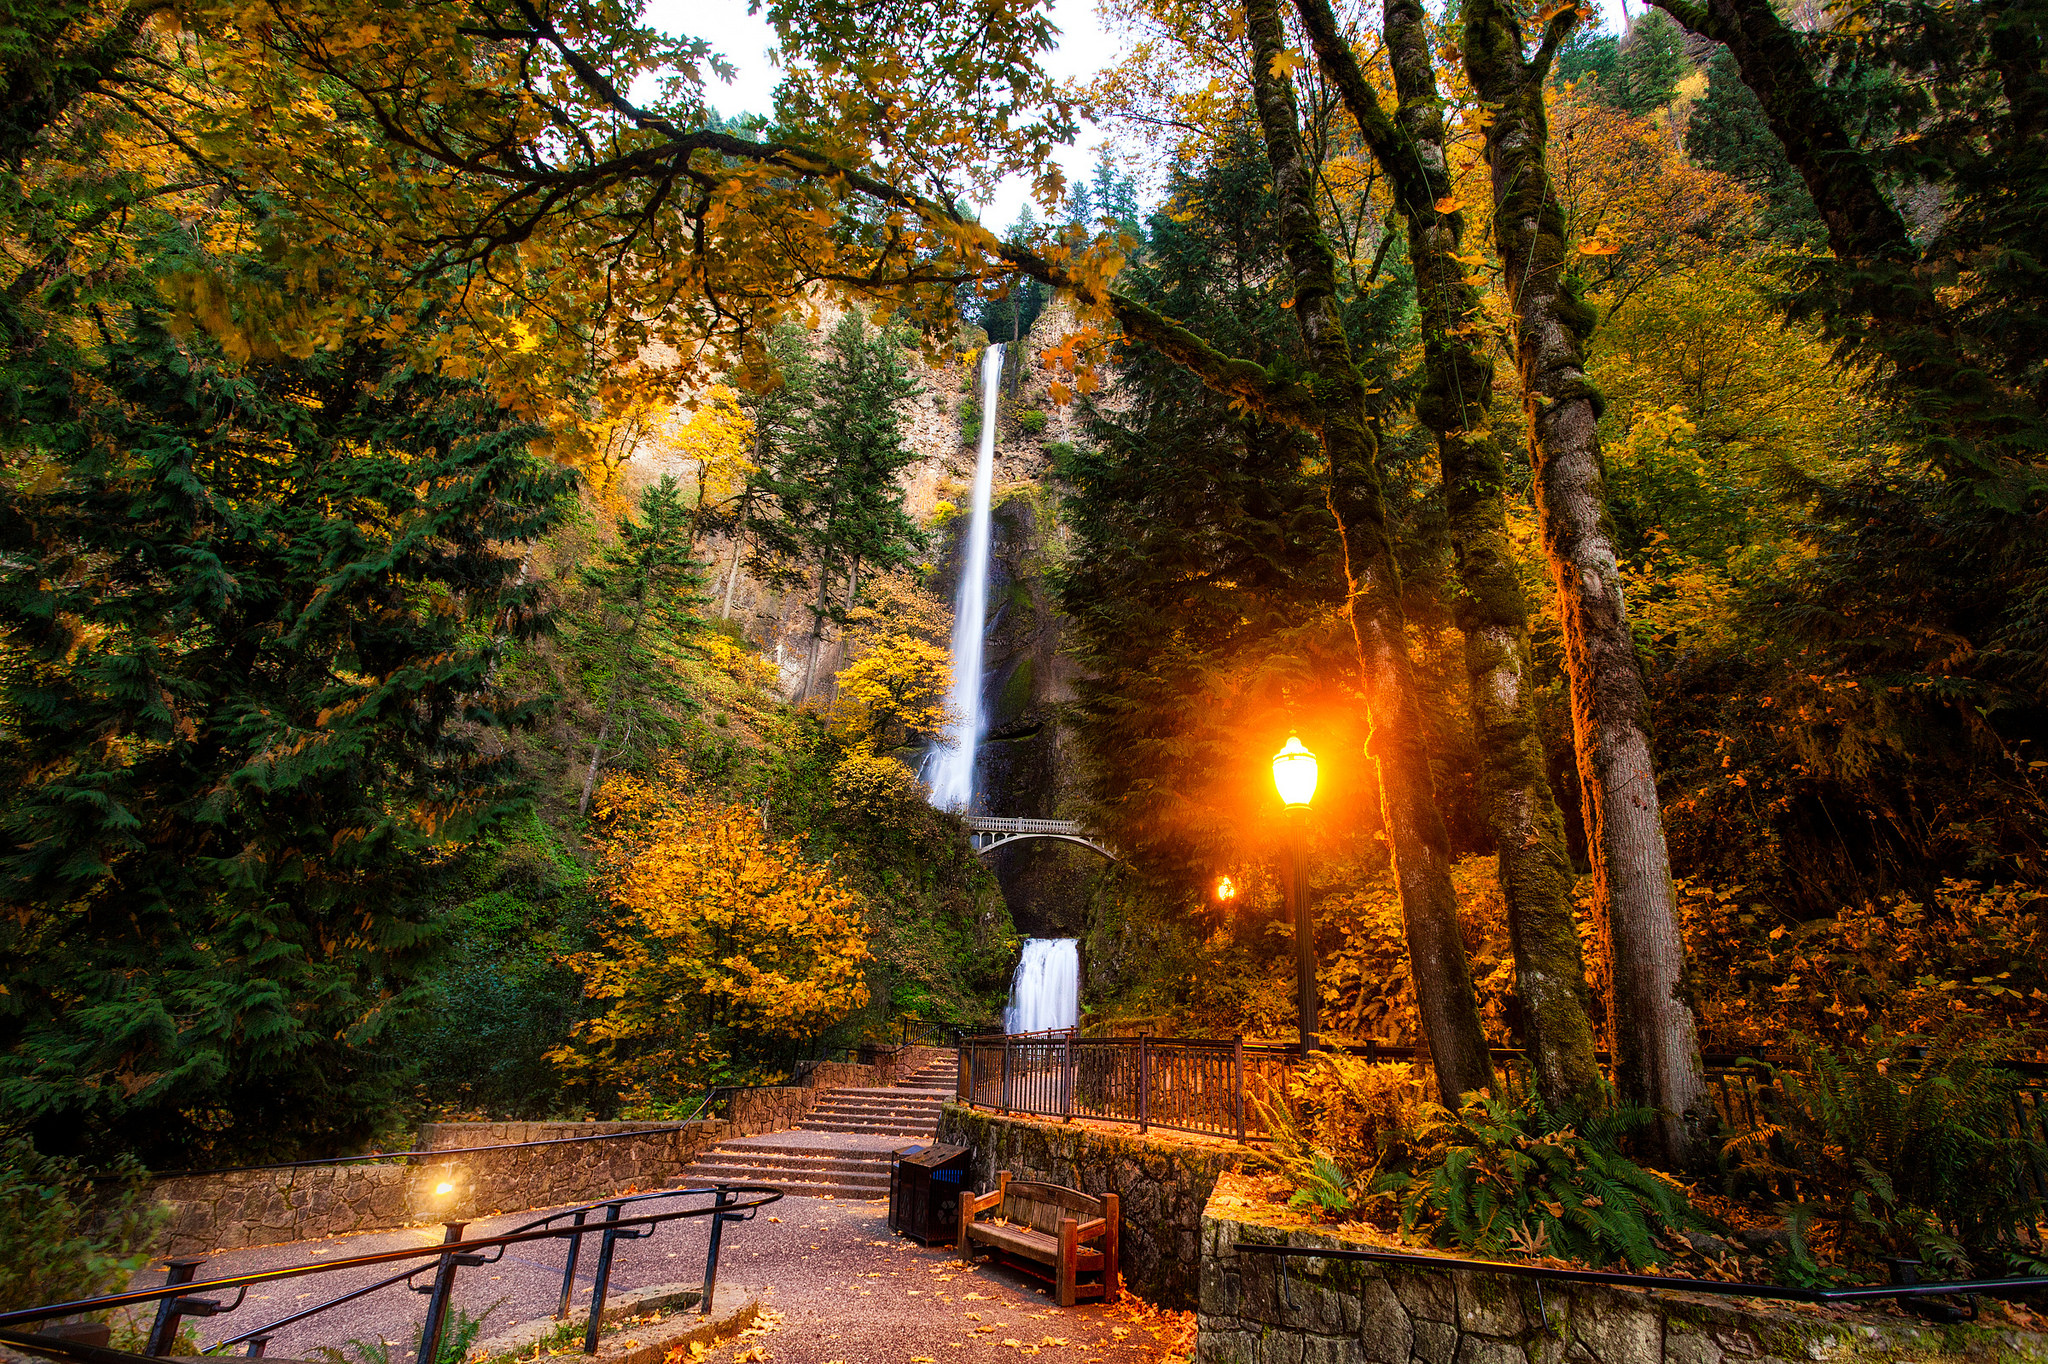 This Road Trip Takes You To The Best Fall Foliage In Oregon